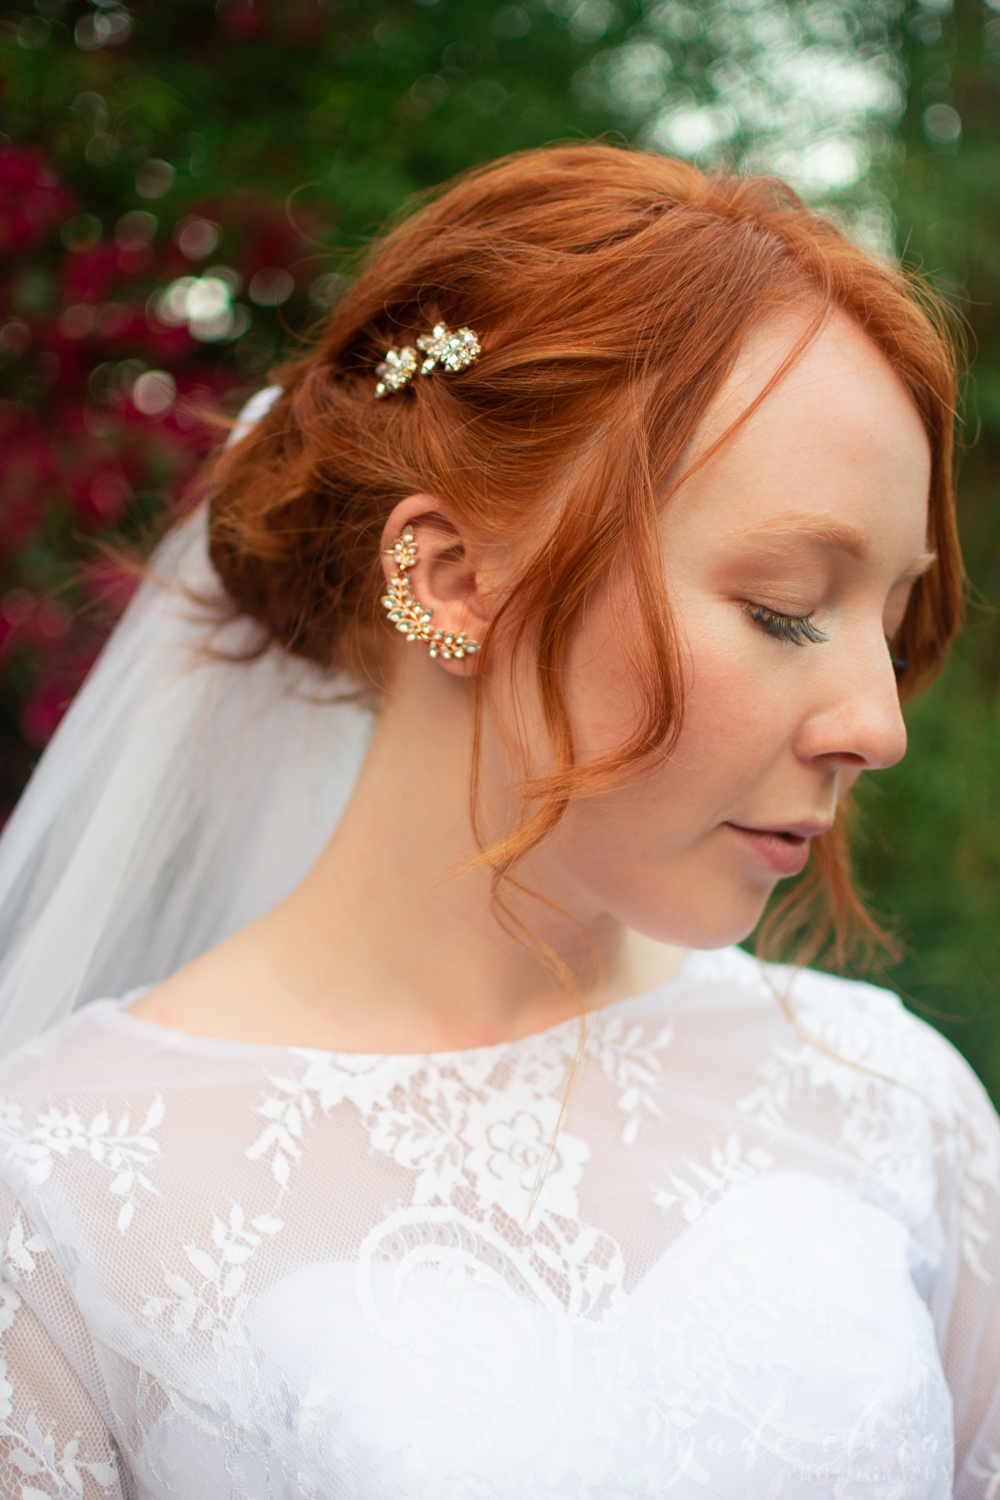 Redhead Bride with Ear Cuff and Veil